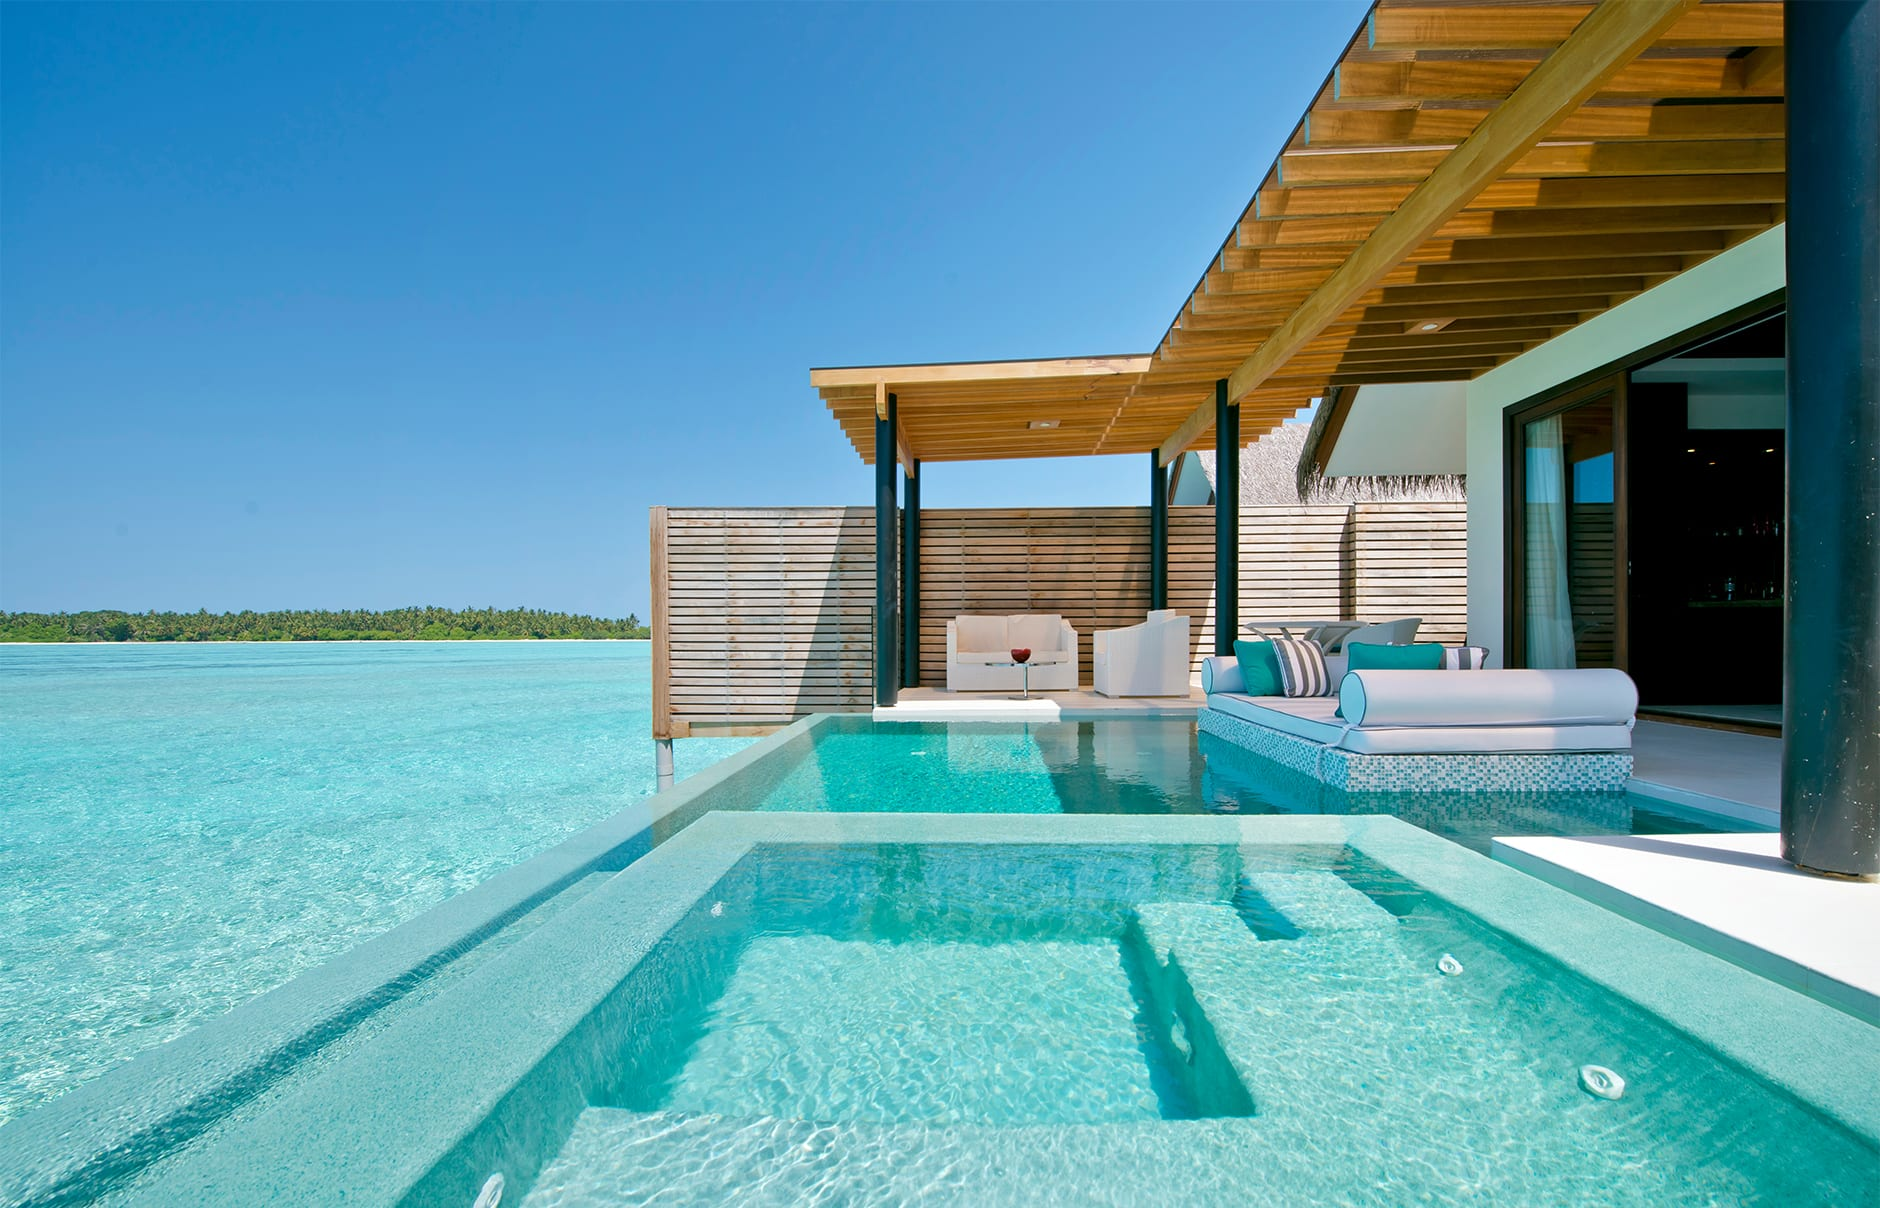 Deluxe Water Studio. Niyama Private Islands Maldives. Hotel Review by TravelPlusStyle. Photo © NIYAMA